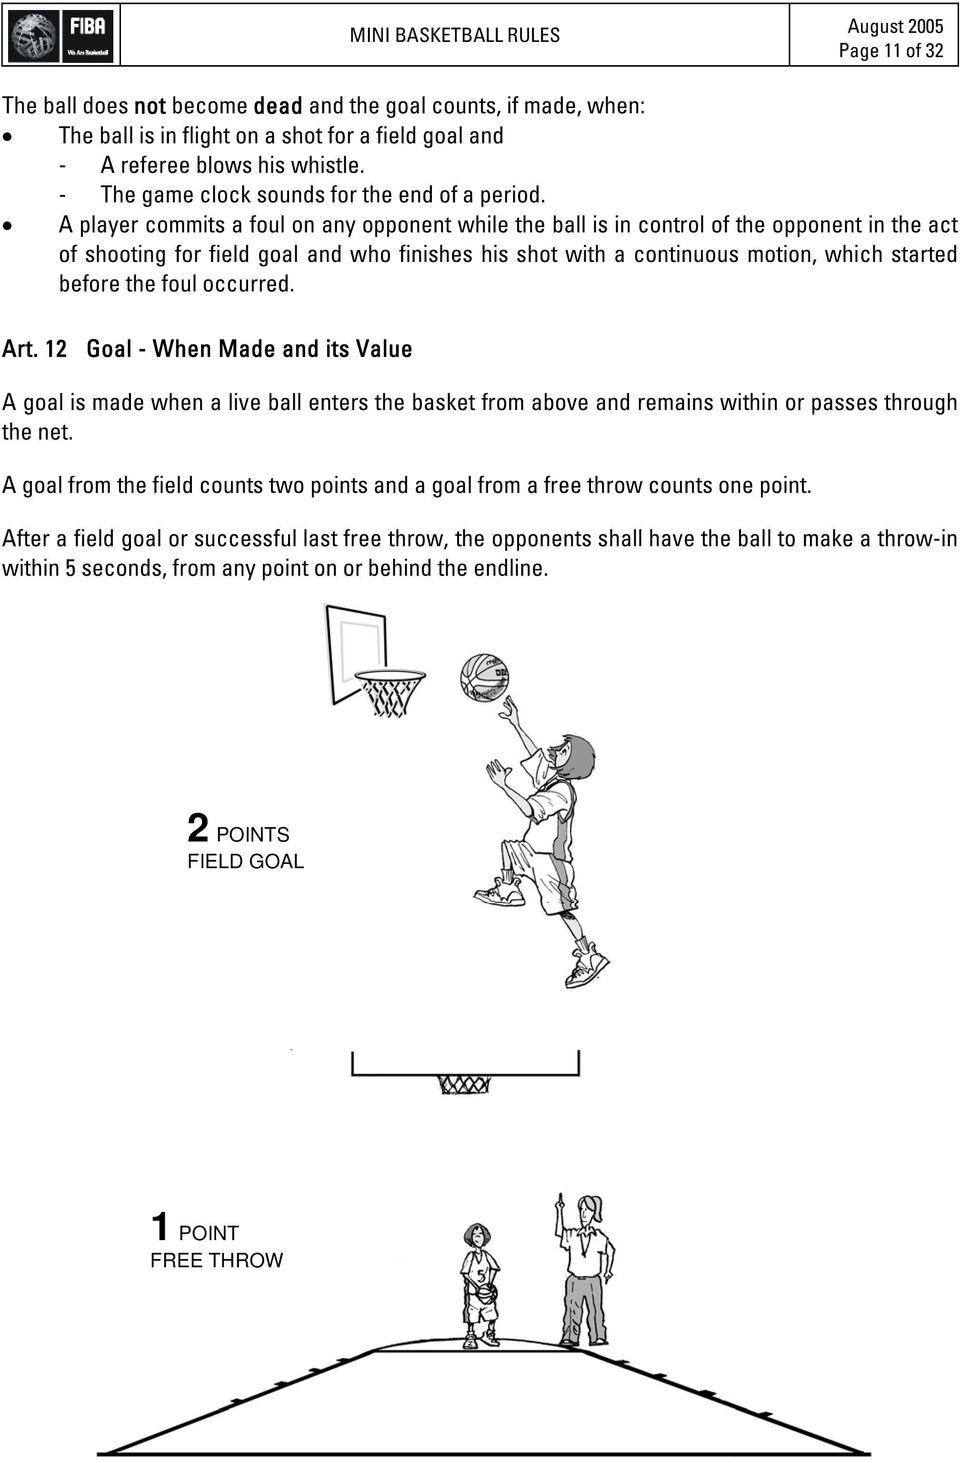 A player commits a foul on any opponent while the ball is in control of the opponent in the act of shooting for field goal and who finishes his shot with a continuous motion, which started before the